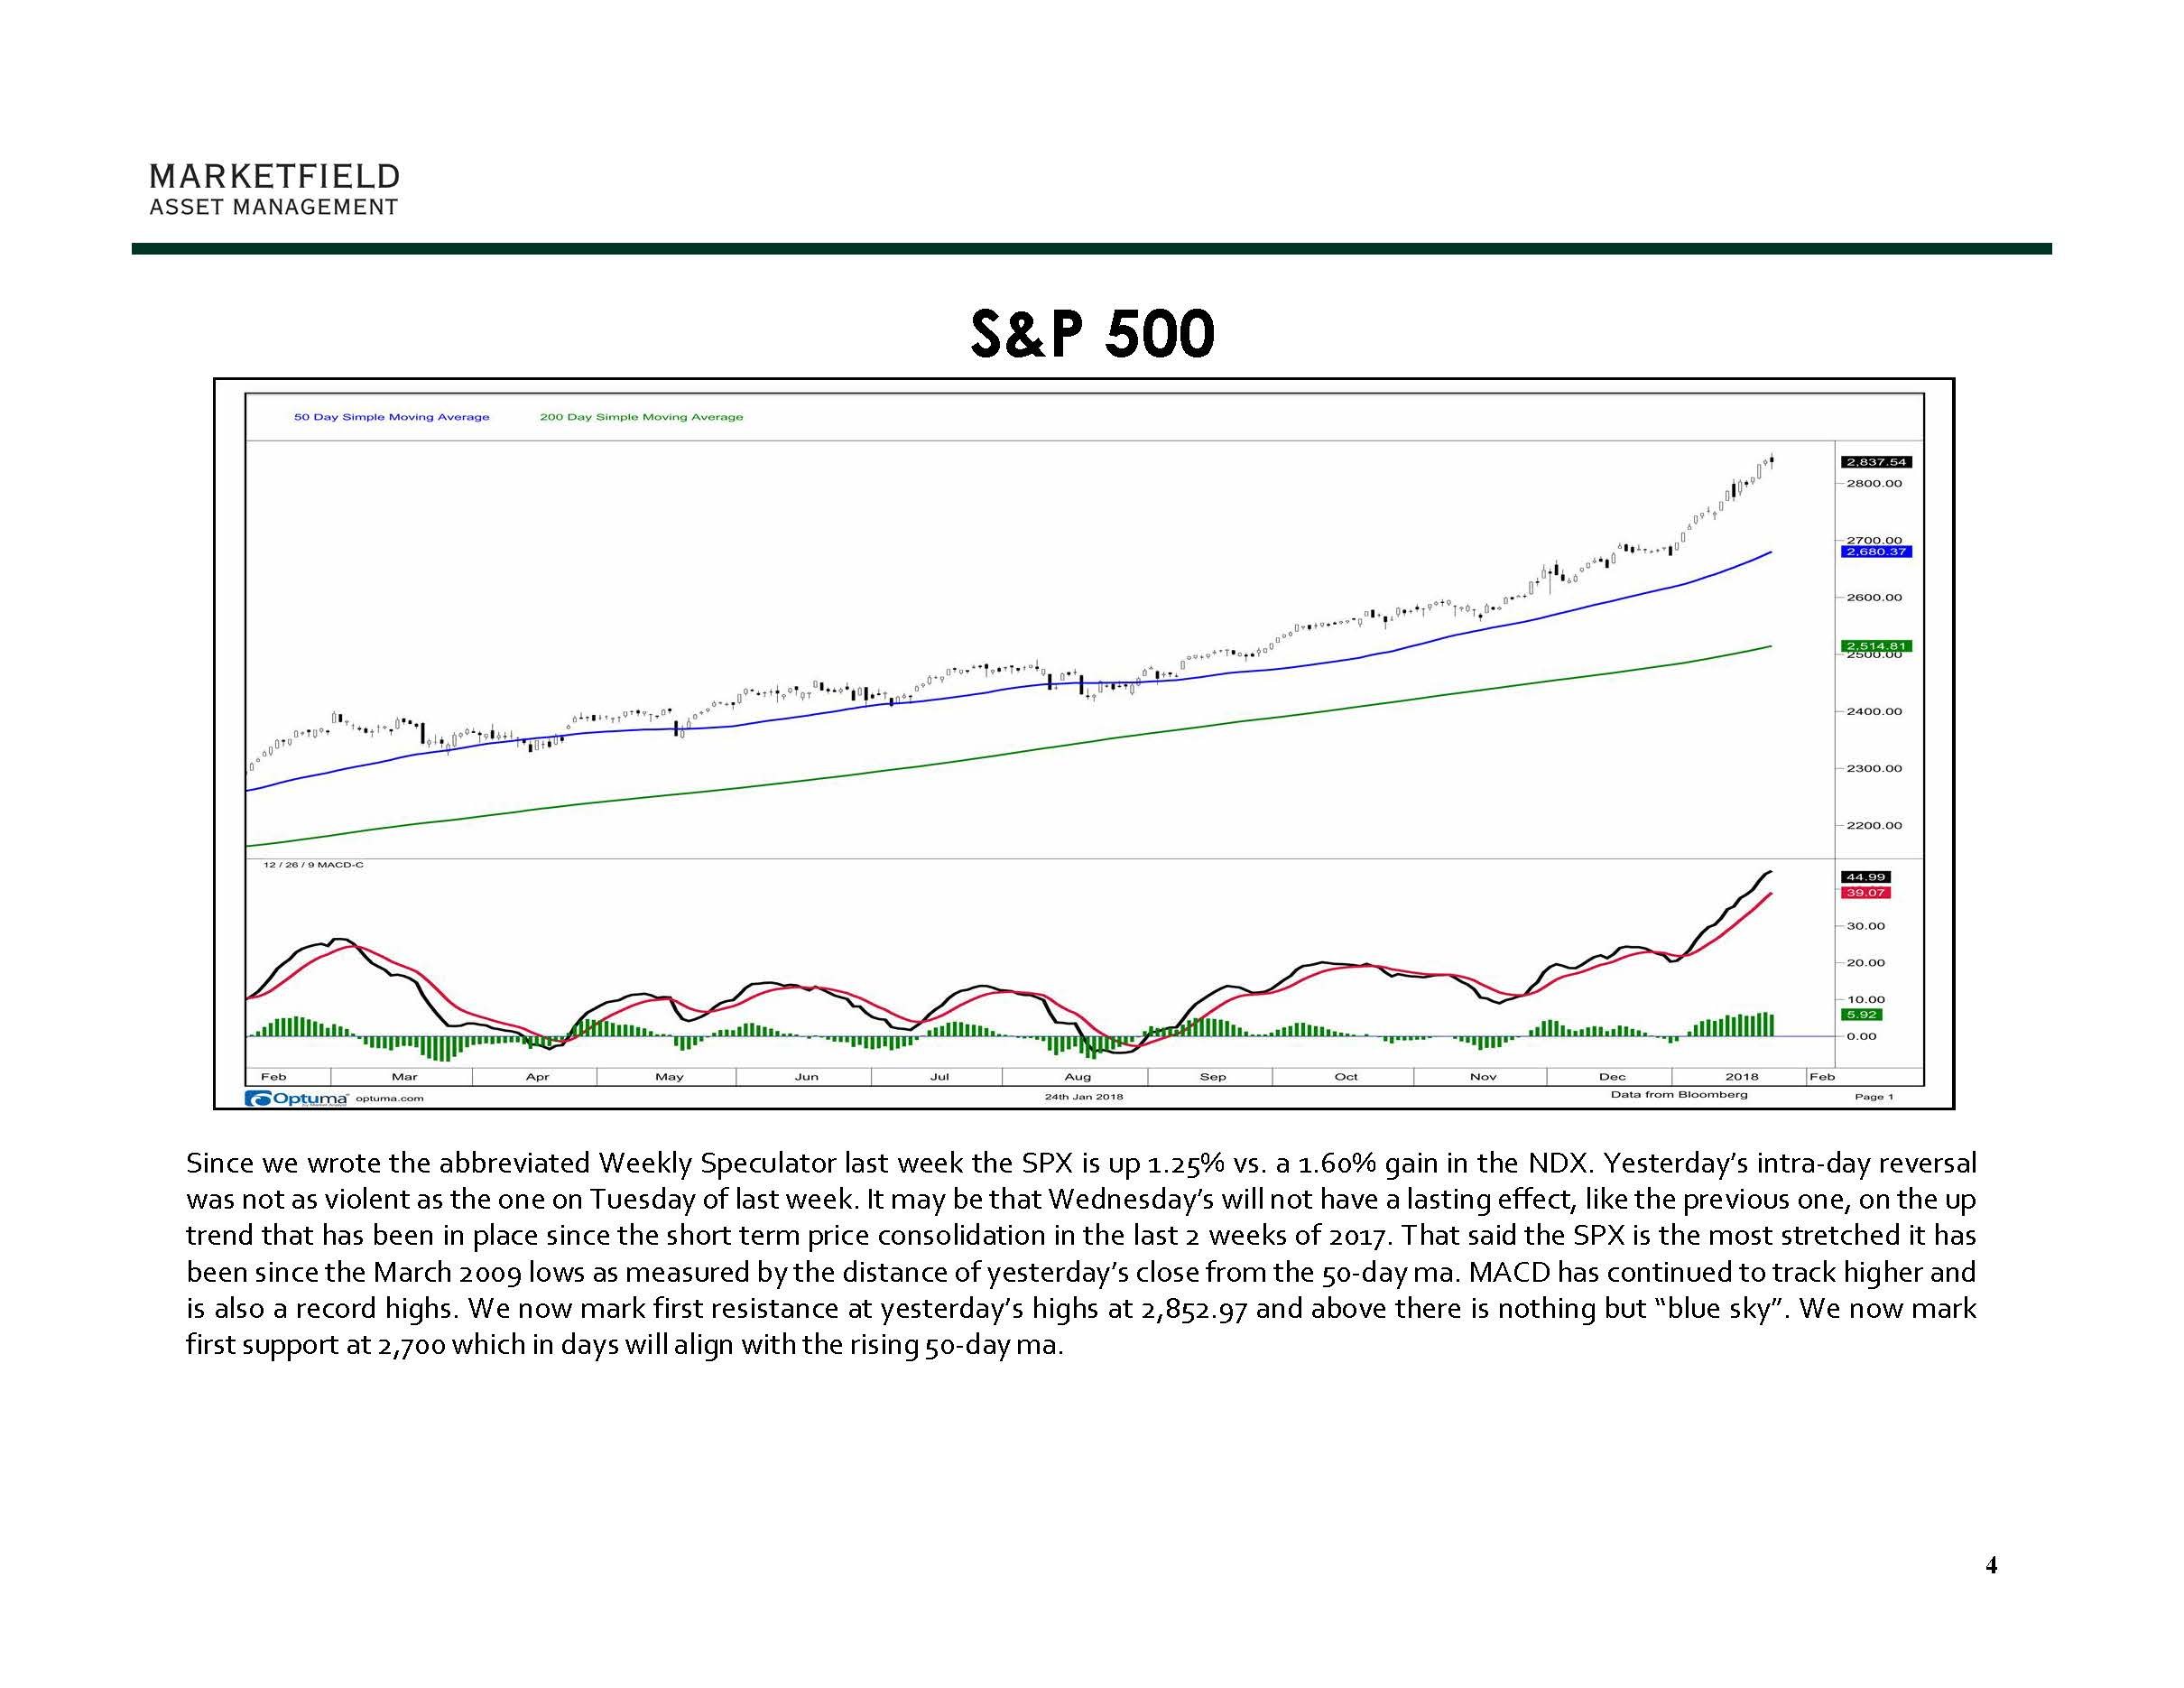 marketfield weekly speculator for 01-25-18_Page_04.jpg